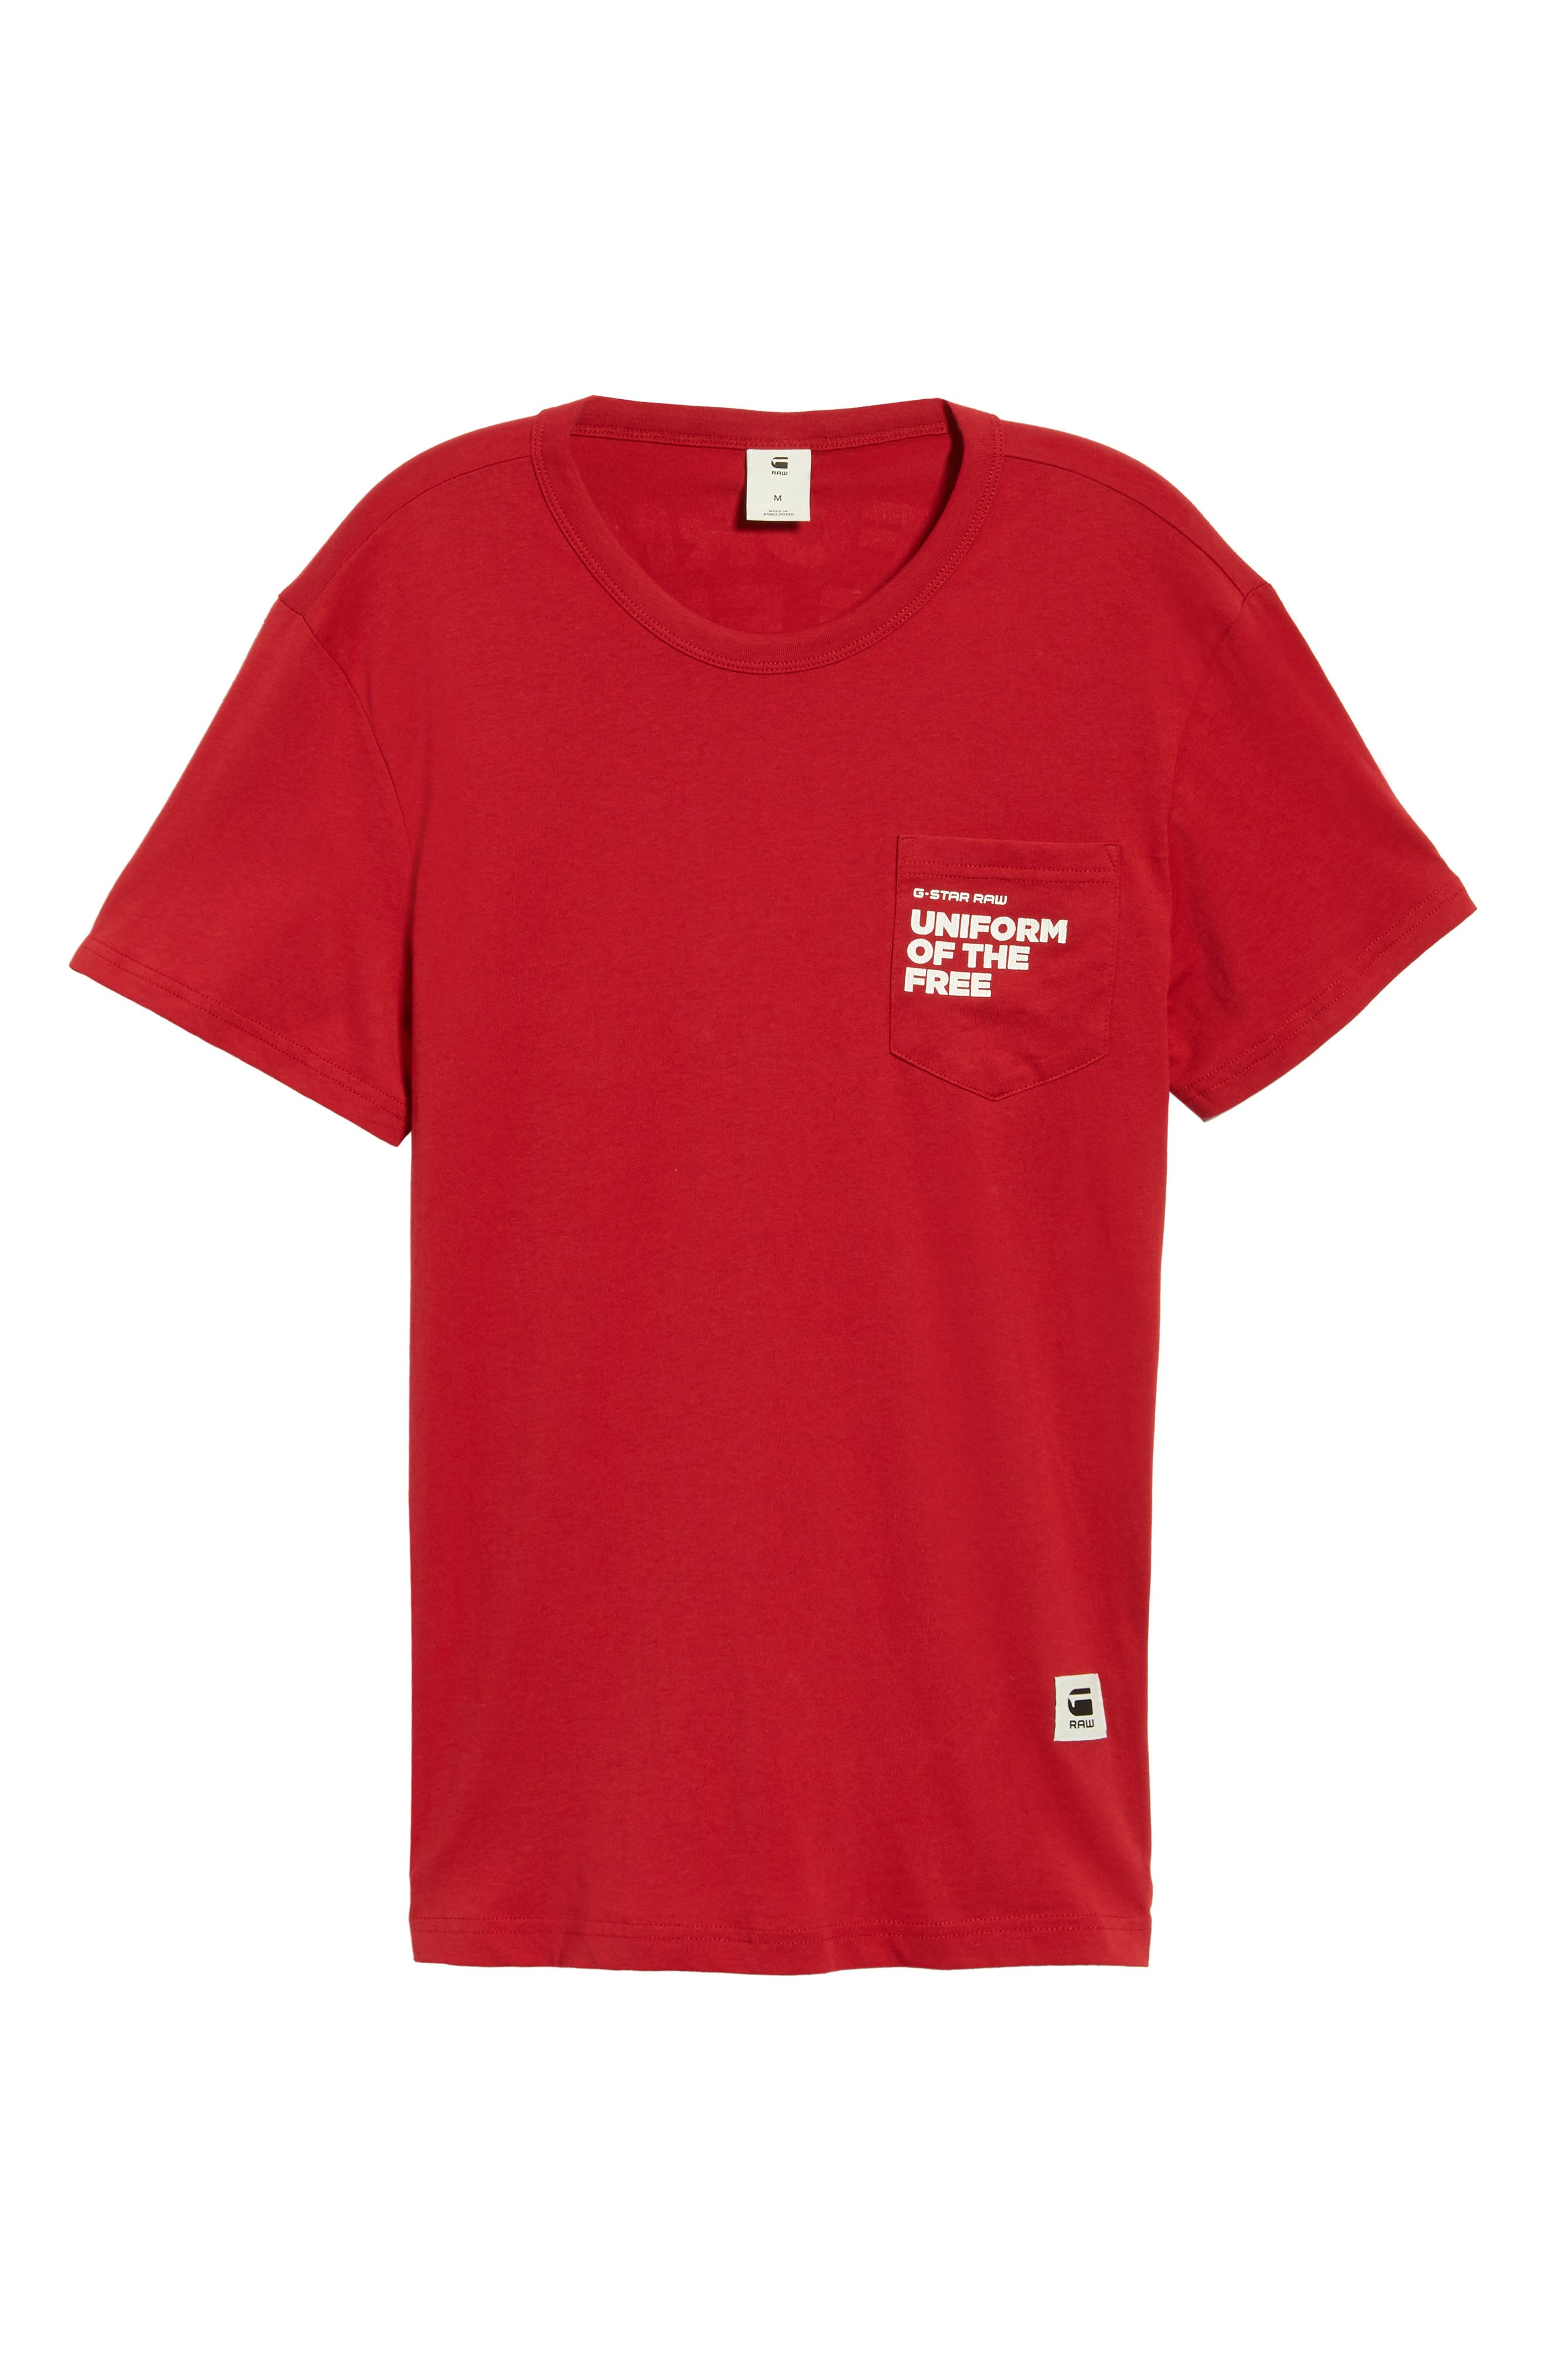 UOTF Pocket T-Shirt,                             Alternate thumbnail 6, color,                             CHILI RED